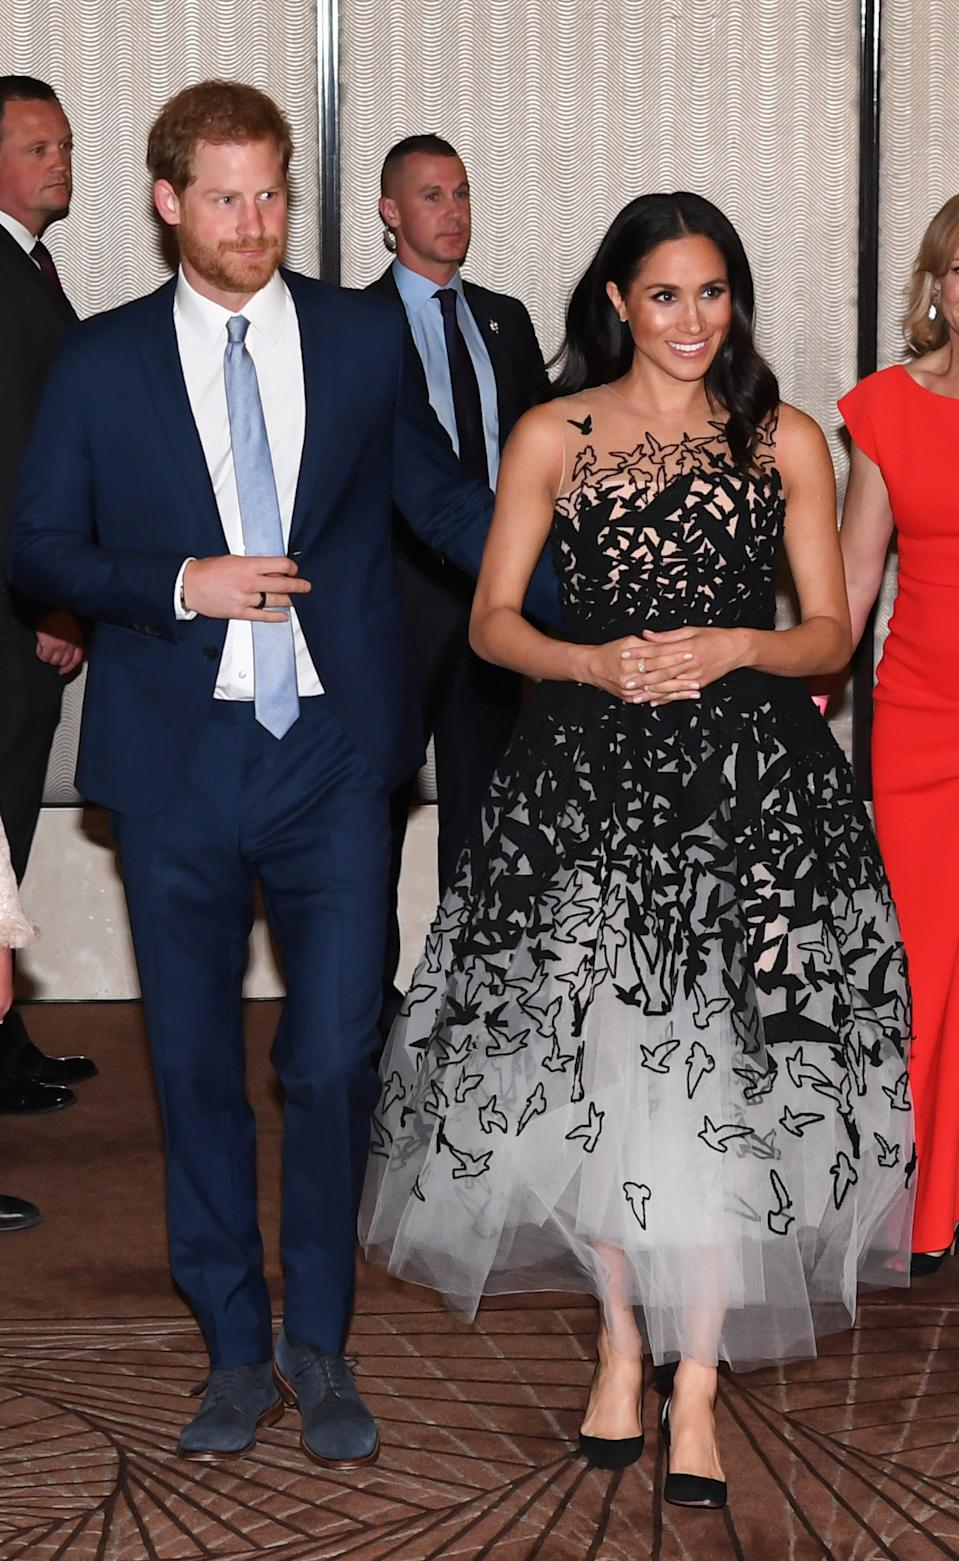 <p>Markle attended the Australian Geographic Society Awards in October 2018 wearing a tulle Oscar de la Renta gown with ribbon and tweed laser cut seagulls and illusion neckline. <em>(Image via Getty Images)</em></p>